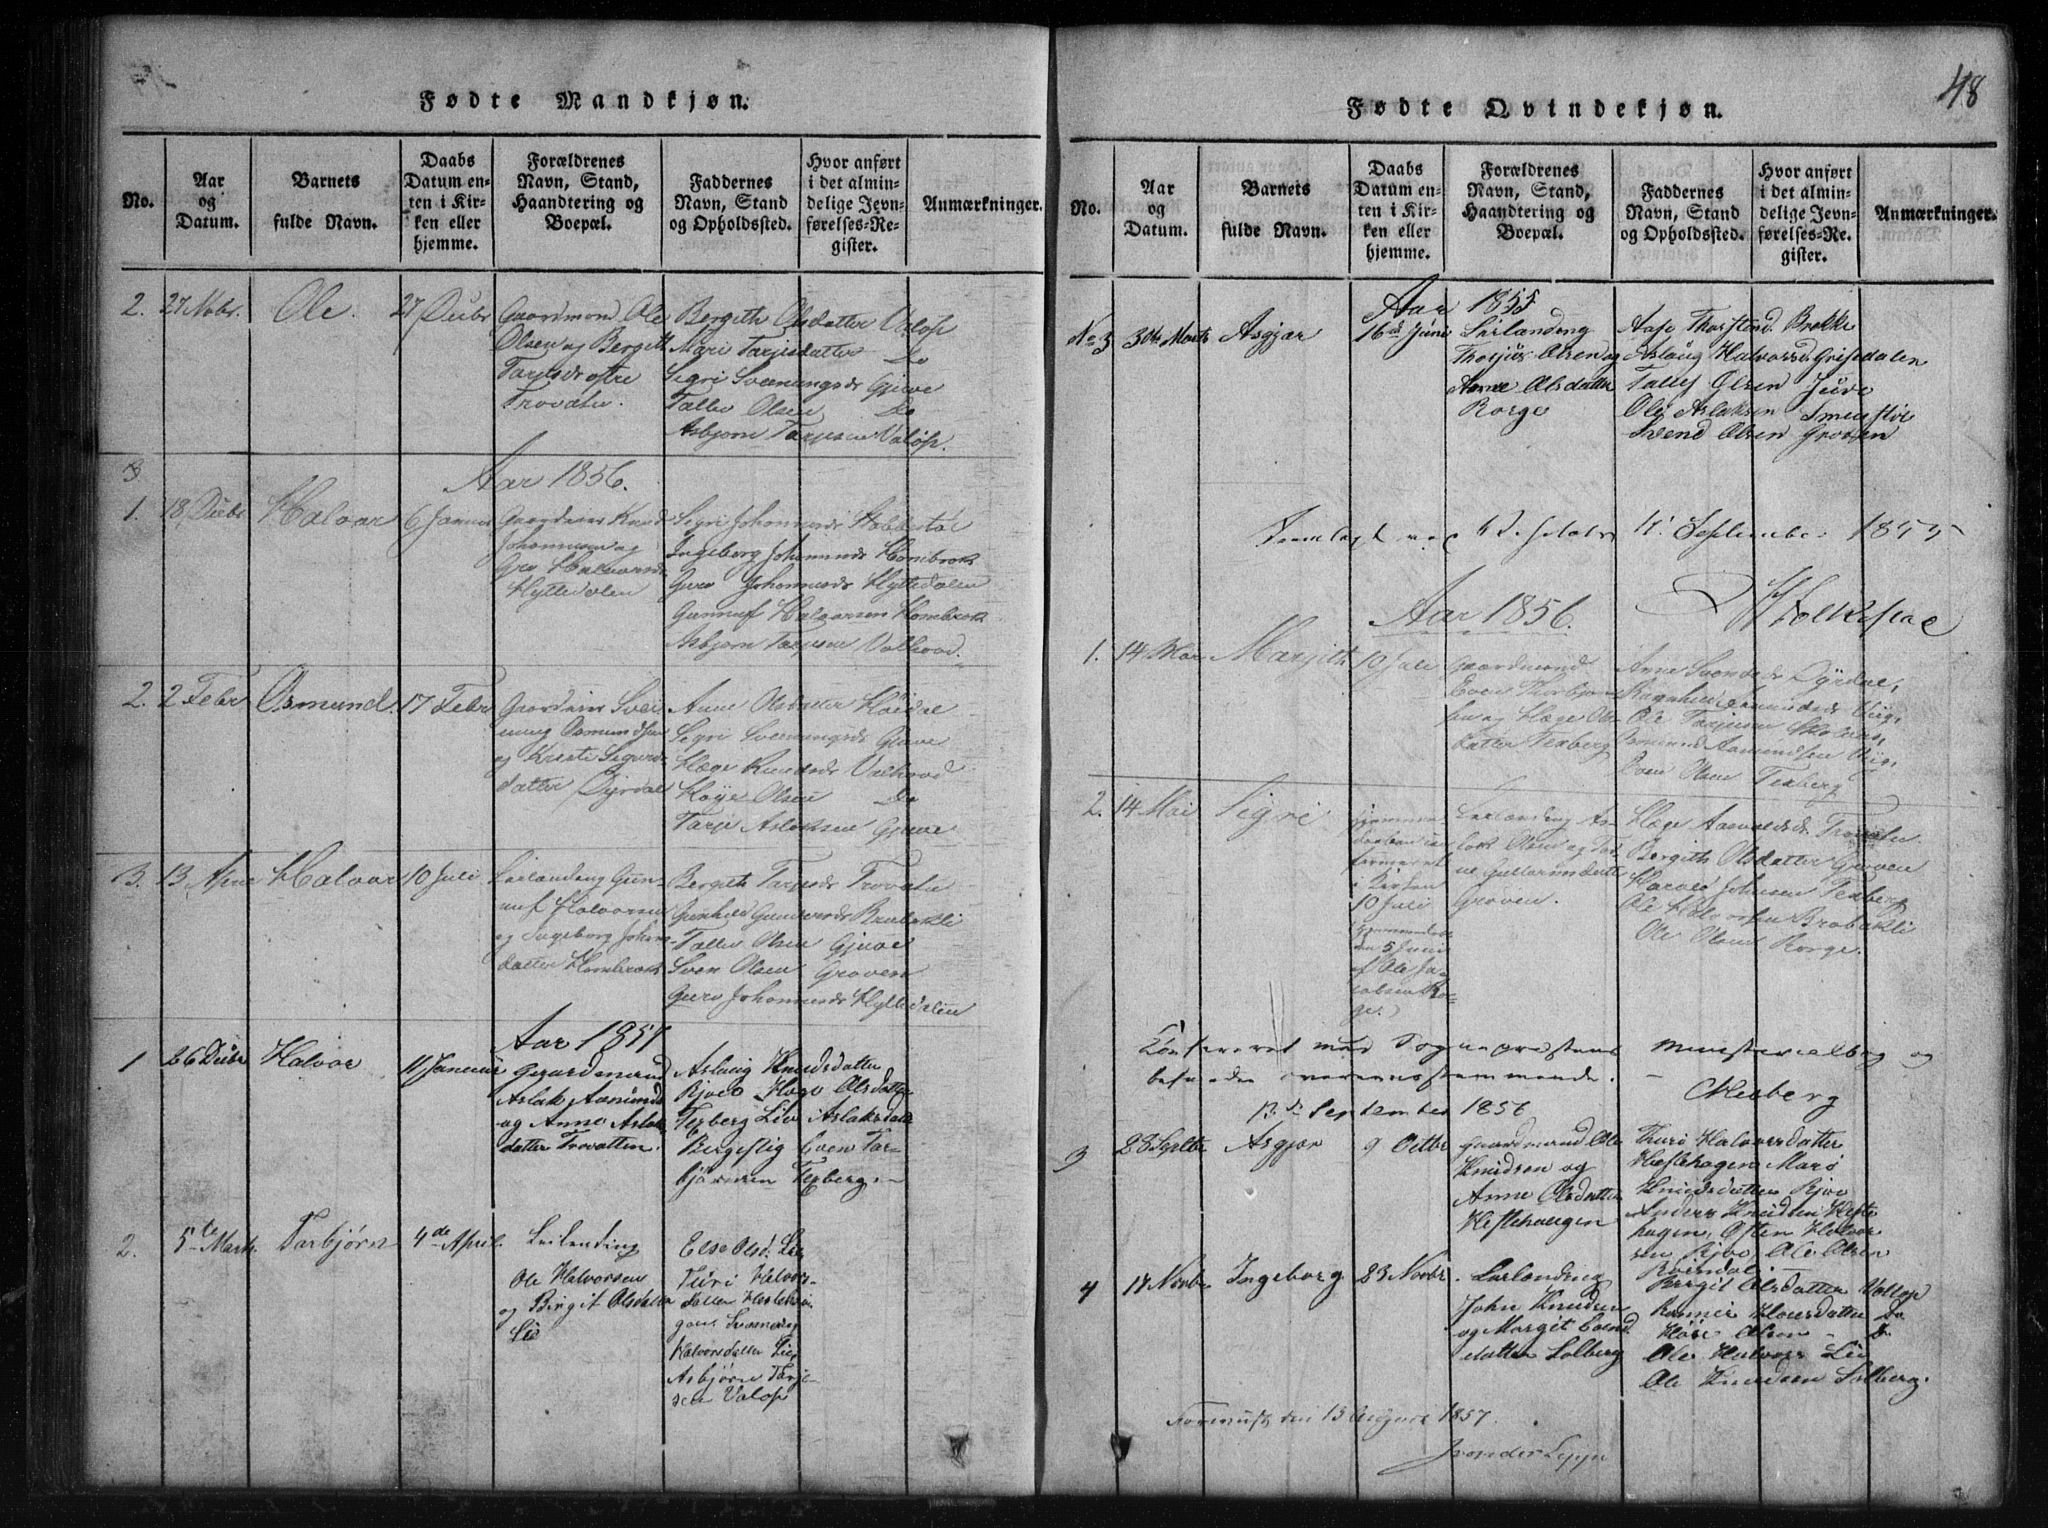 SAKO, Rauland kirkebøker, G/Gb/L0001: Parish register (copy) no. II 1, 1815-1886, p. 48